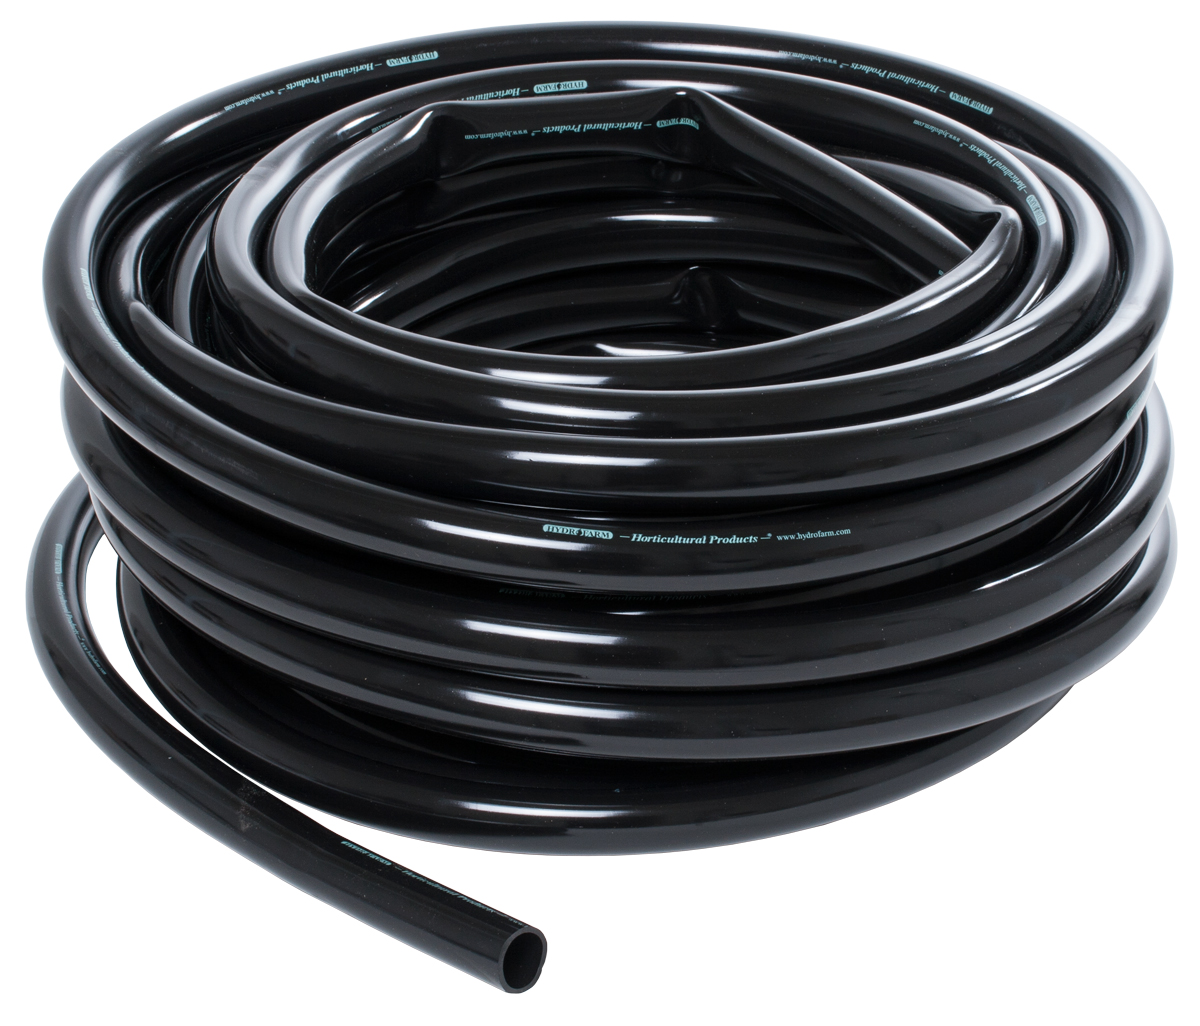 HydroFarm 1 Inch Black Tubing 100 Foot Roll